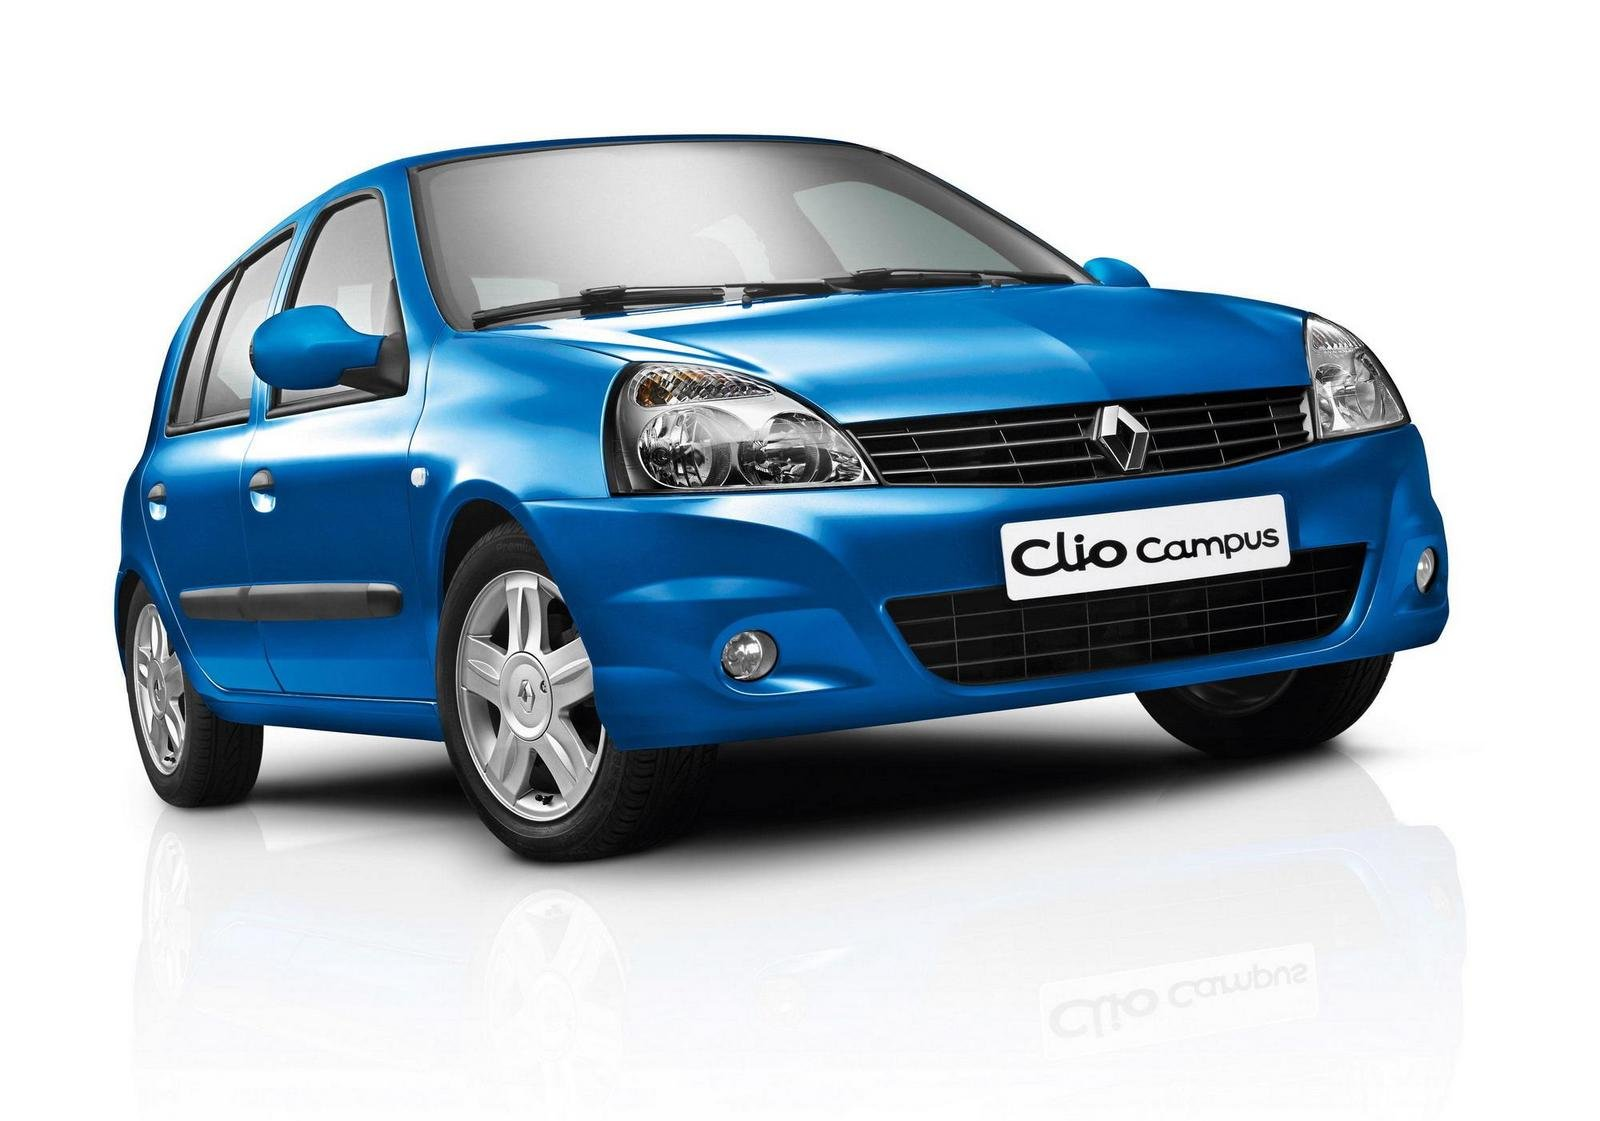 2009 renault clio campus review top speed. Black Bedroom Furniture Sets. Home Design Ideas